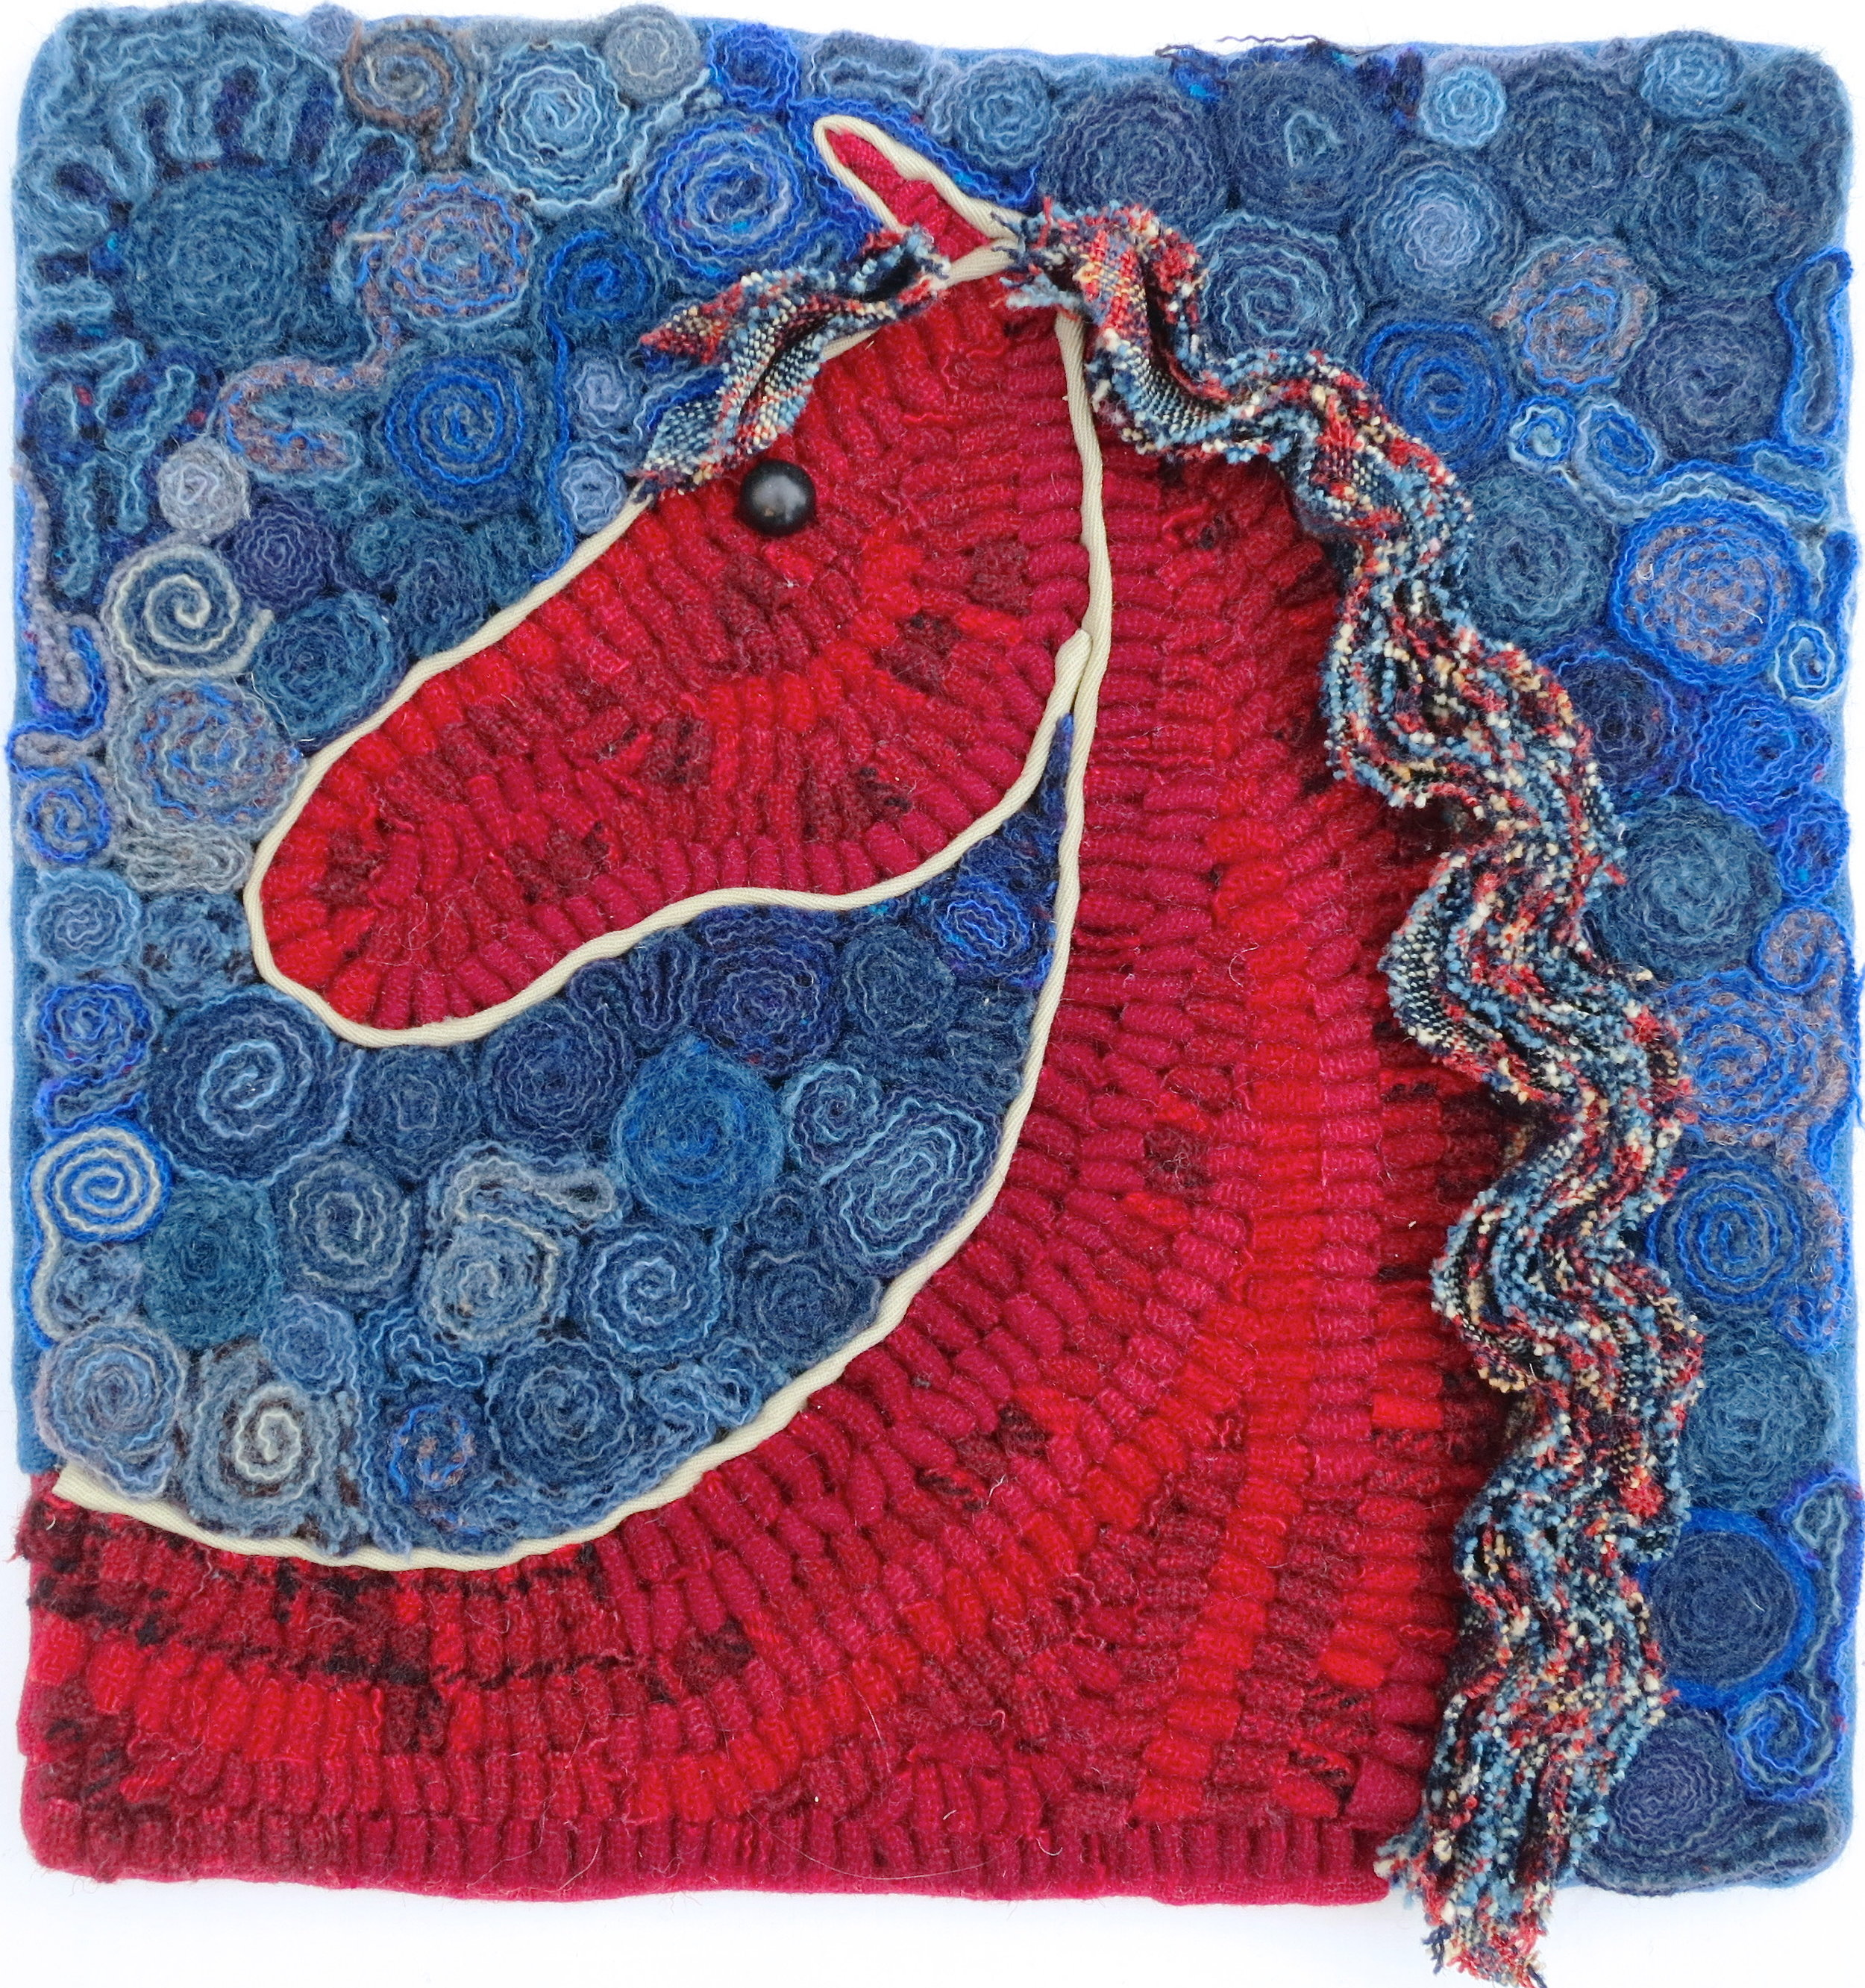 """On Alert   Horse 2015 8"""" x 8"""" Wool, shoe button hand sewn and hand hooked on Monk's cloth using bias shirring, coiling and standing wool.  Pattern included in  Coils, Folds, Twists and Turns: Contemporary Techniques in Fiber , see Books."""